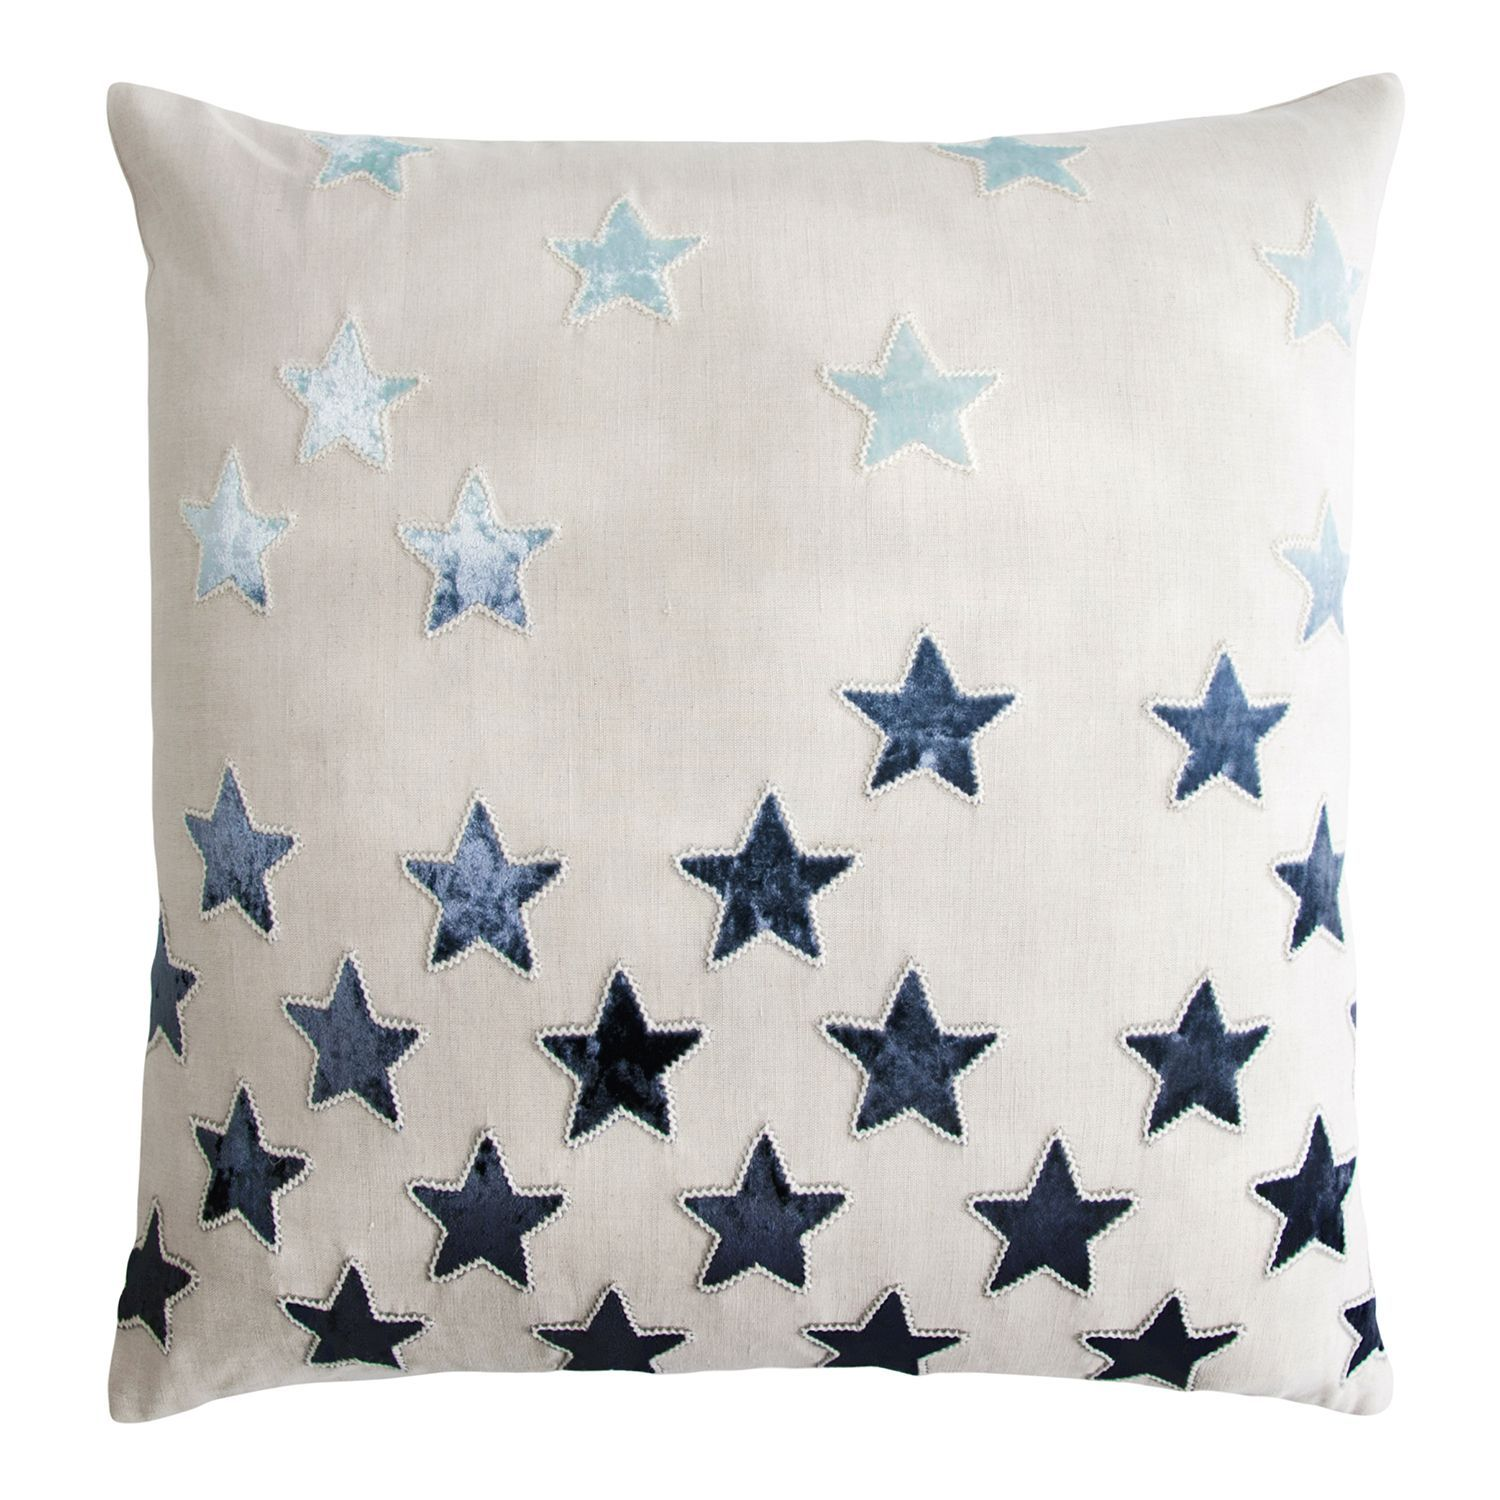 Kevin O Brien Studio Stars Embroidered Velvet Twilight Applique